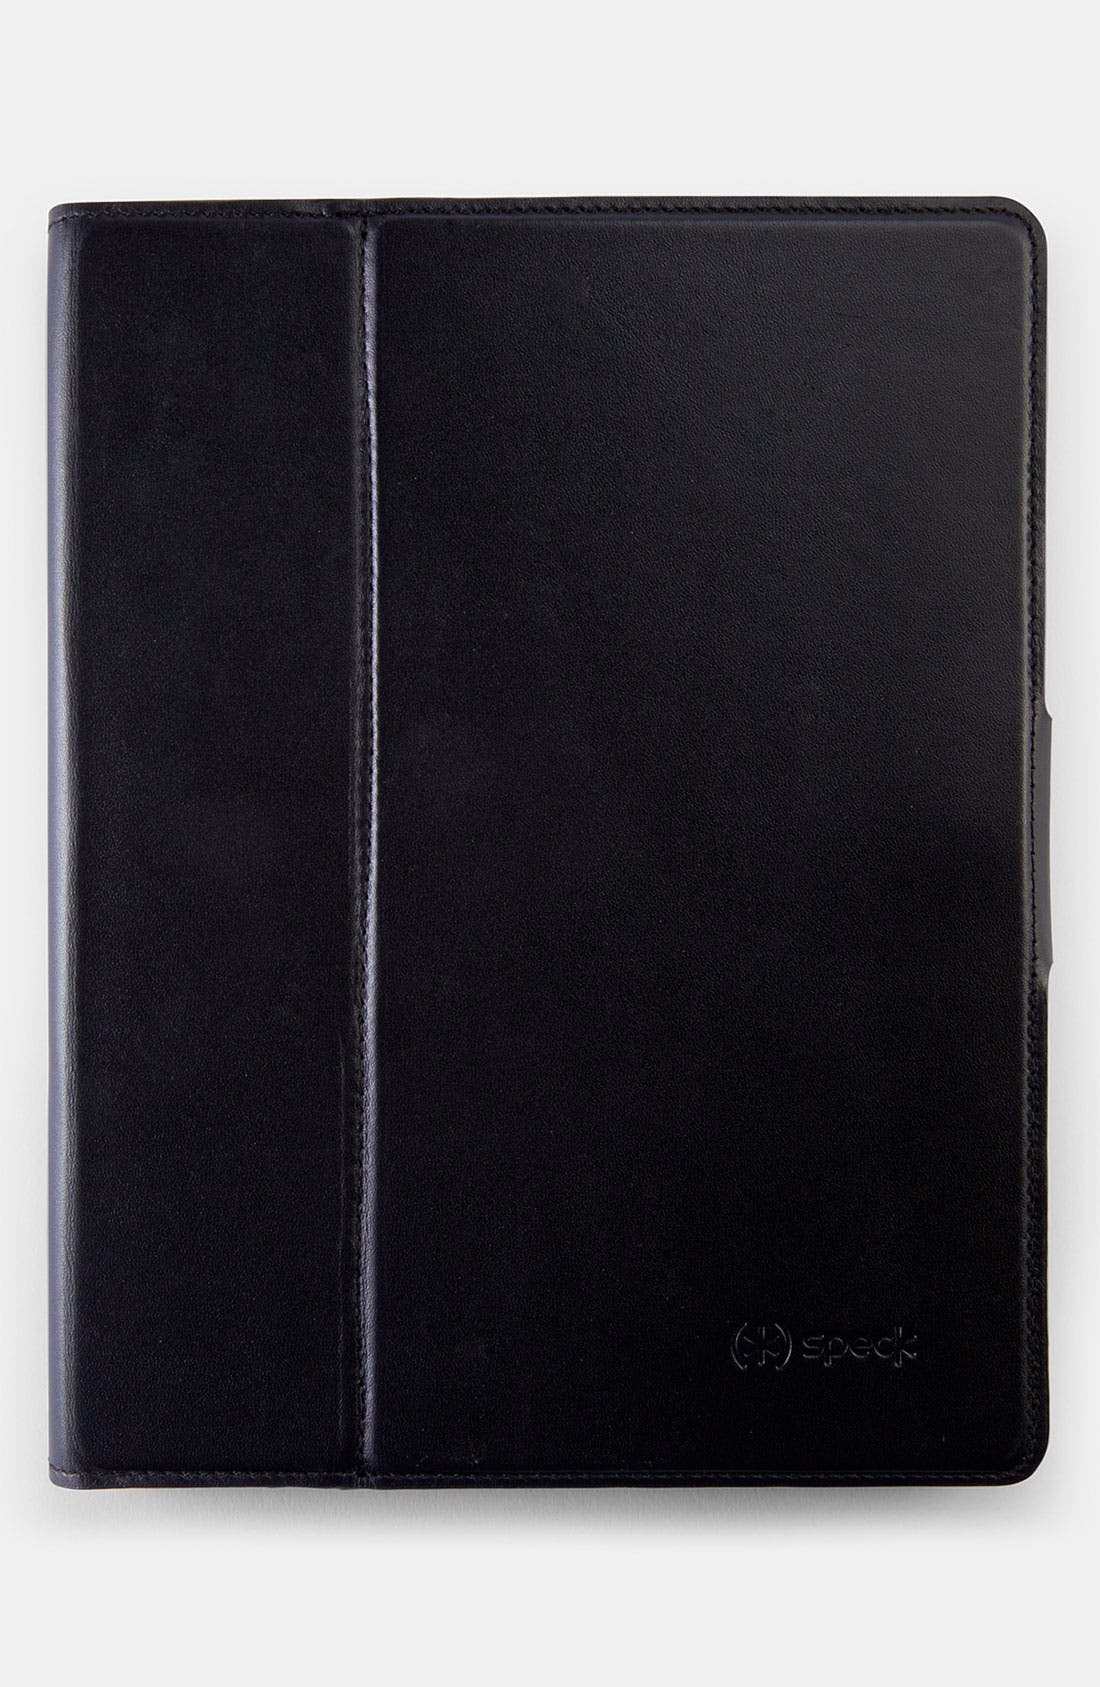 Alternate Image 1 Selected - Speck 'Wanderfolio - Luxe' Leather iPad 3 Case